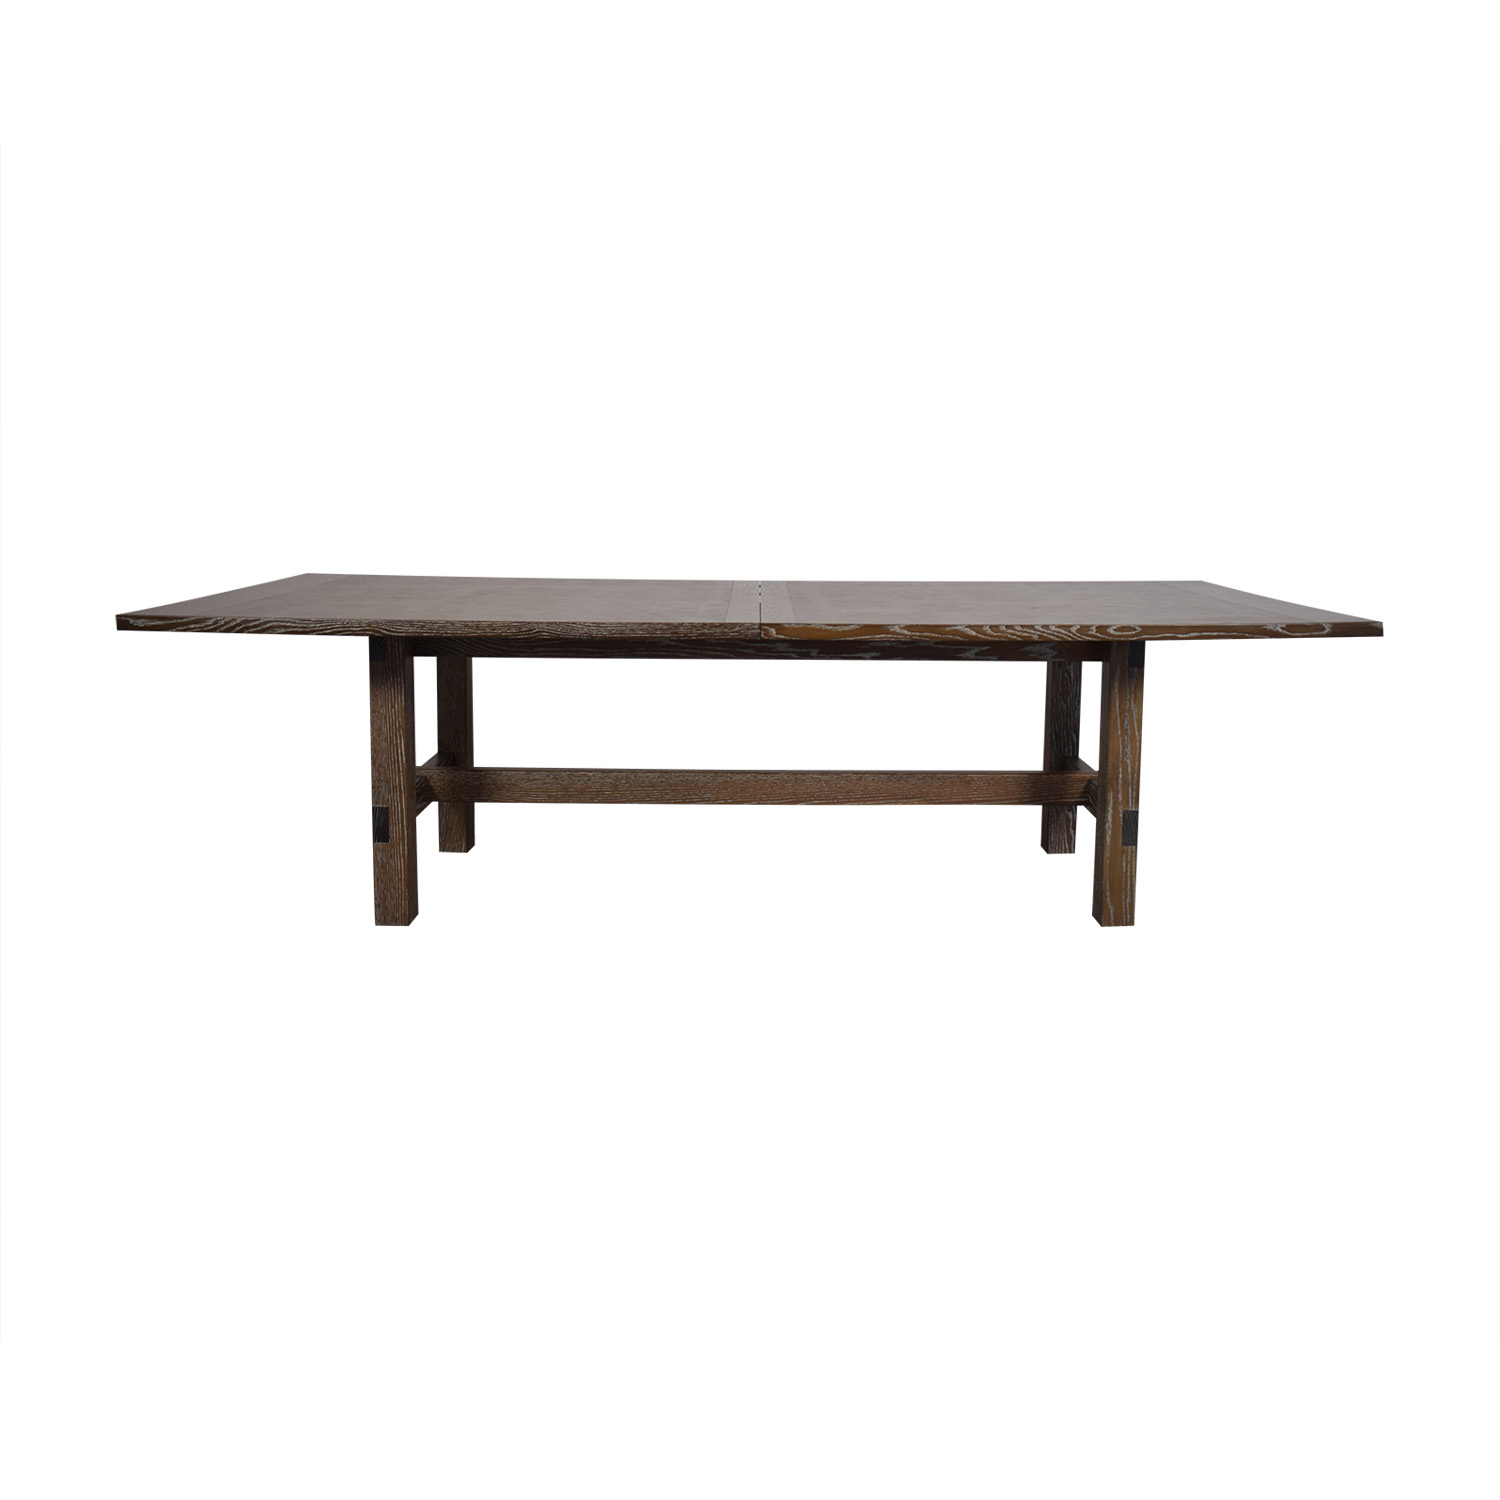 Custom Dining Table dimensions